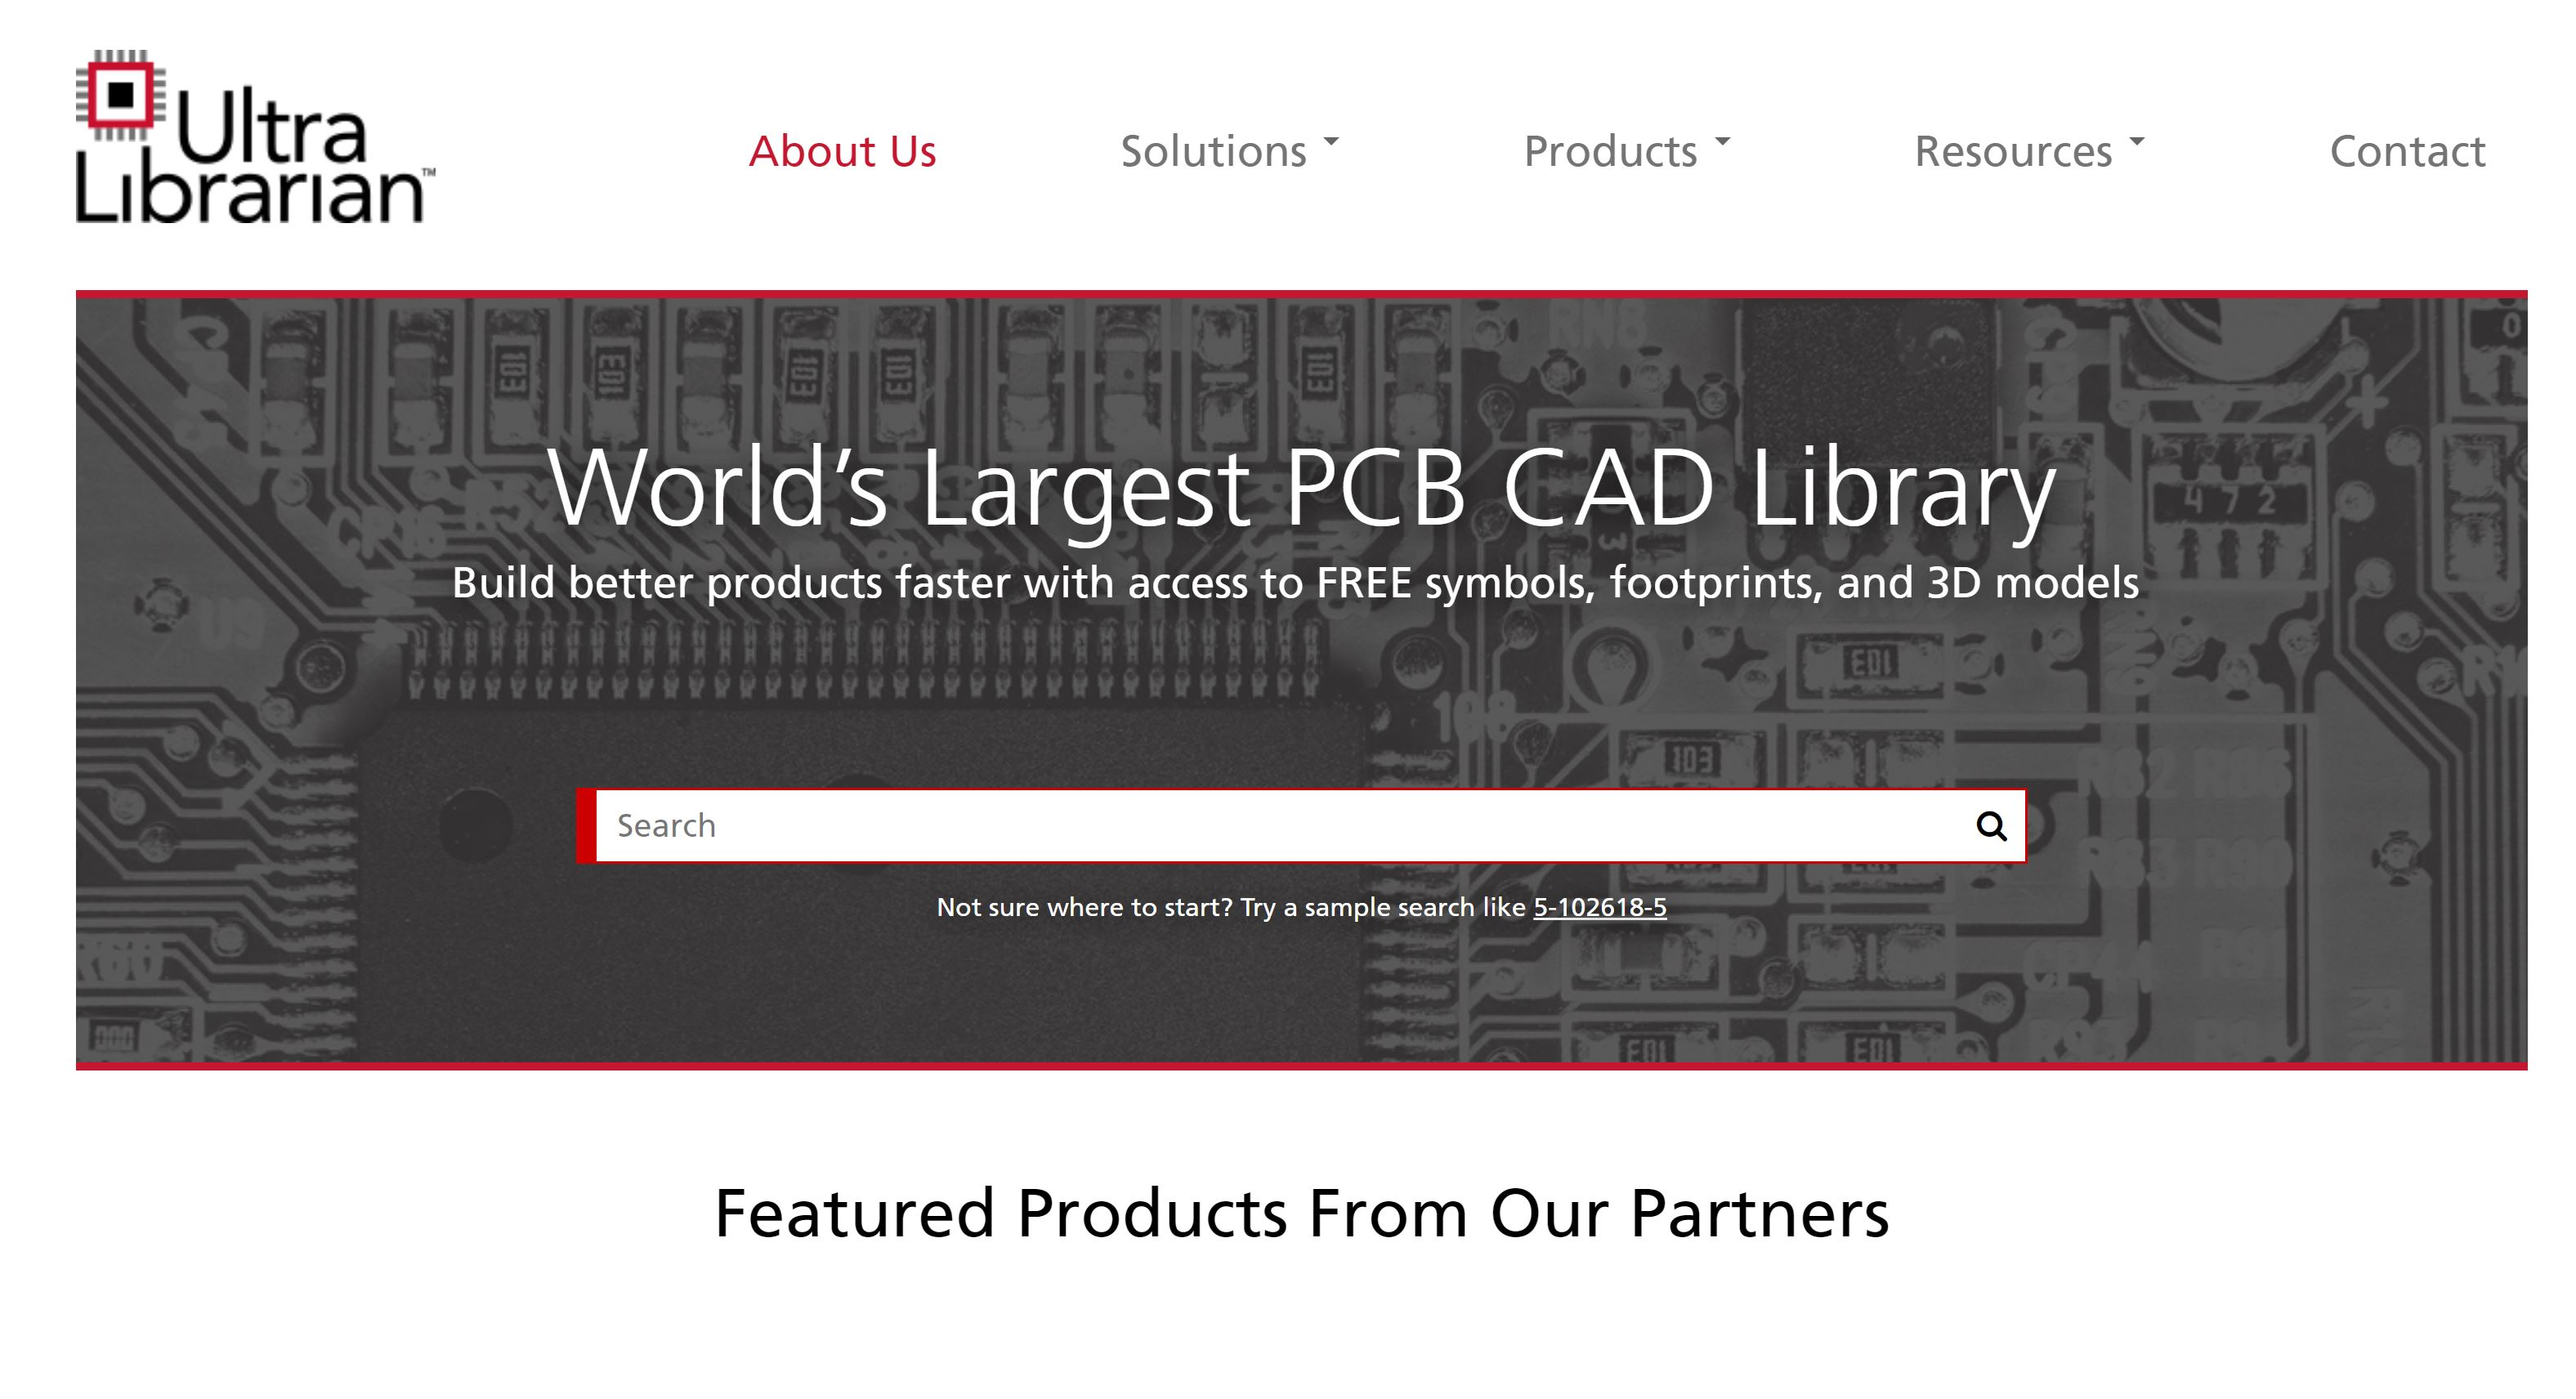 Top 10 websites to find footprints for your next PCB project